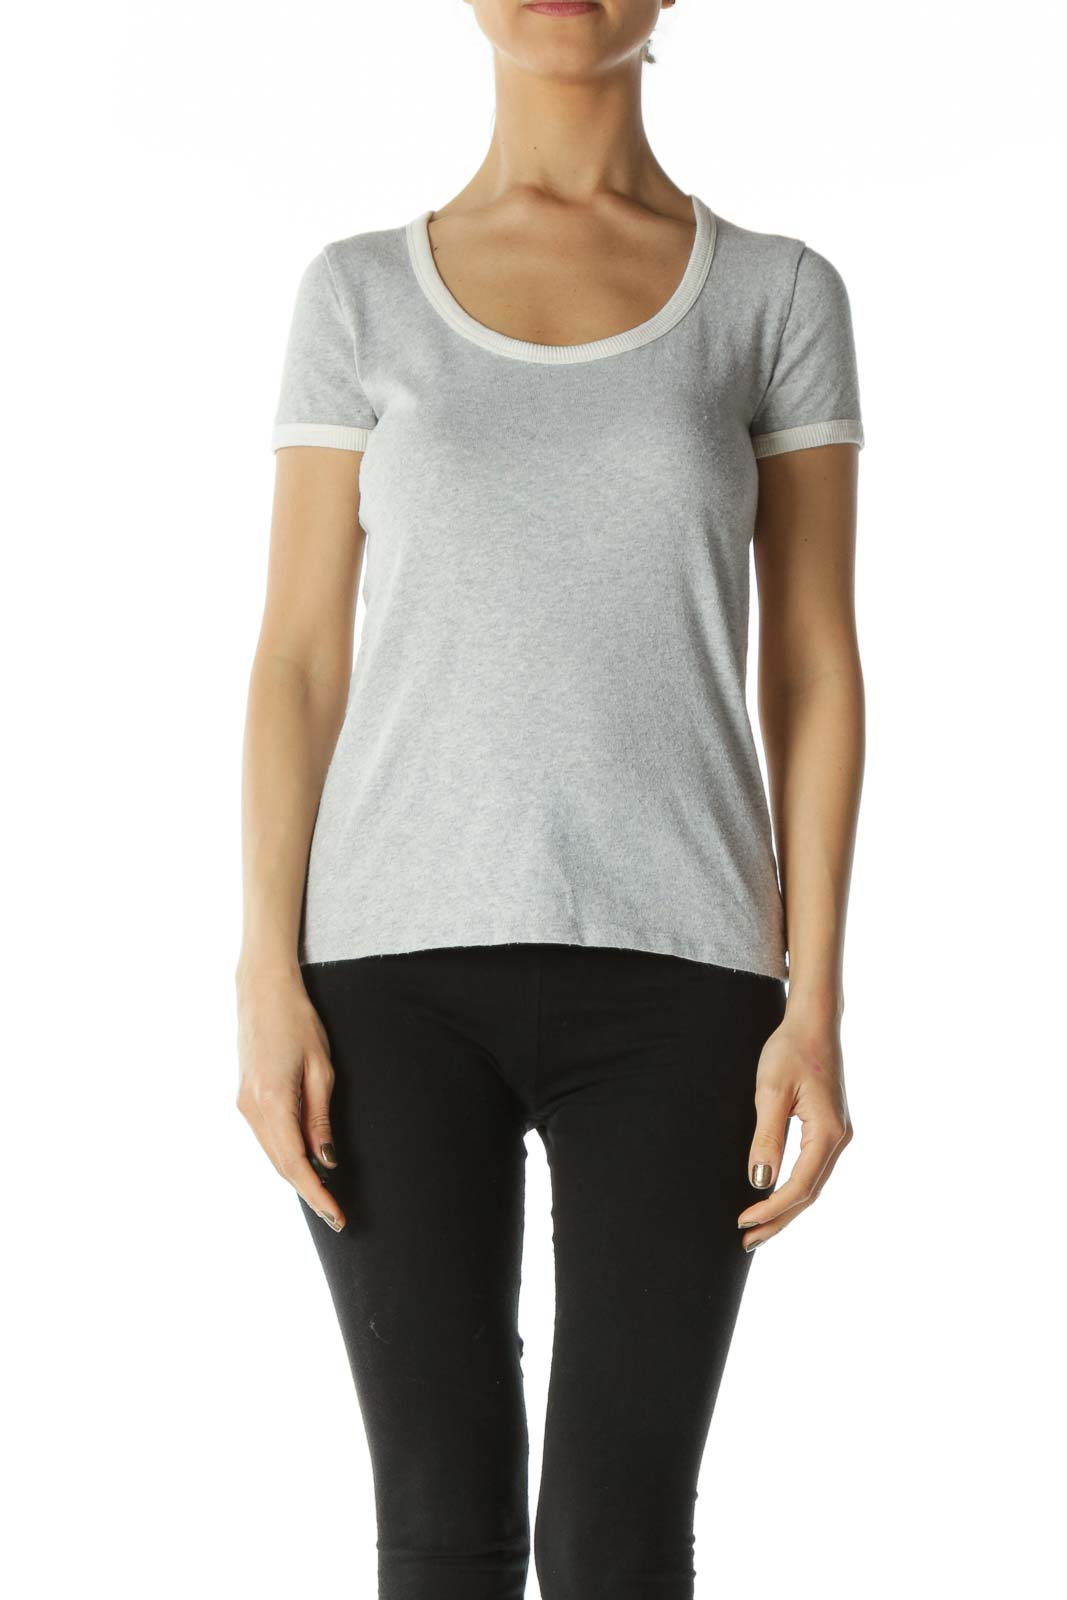 Grey Scoop-Neck Tee with White Neck and Sleeve Bands Front